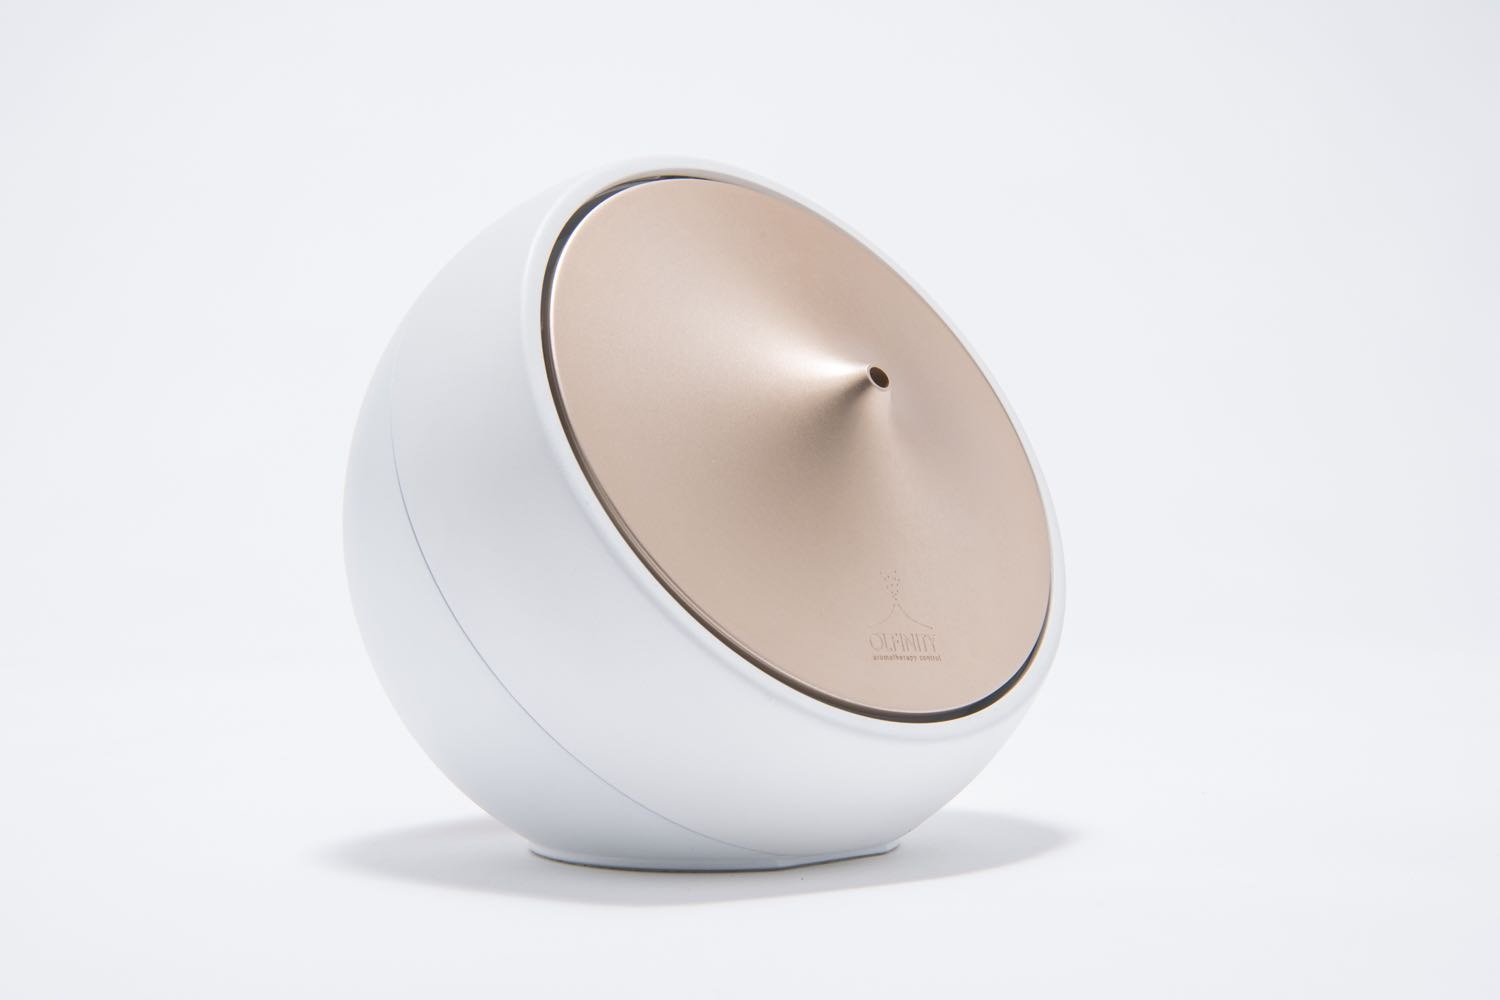 OLFINITY   Introducing The Future of Healthy Smart Home Globally